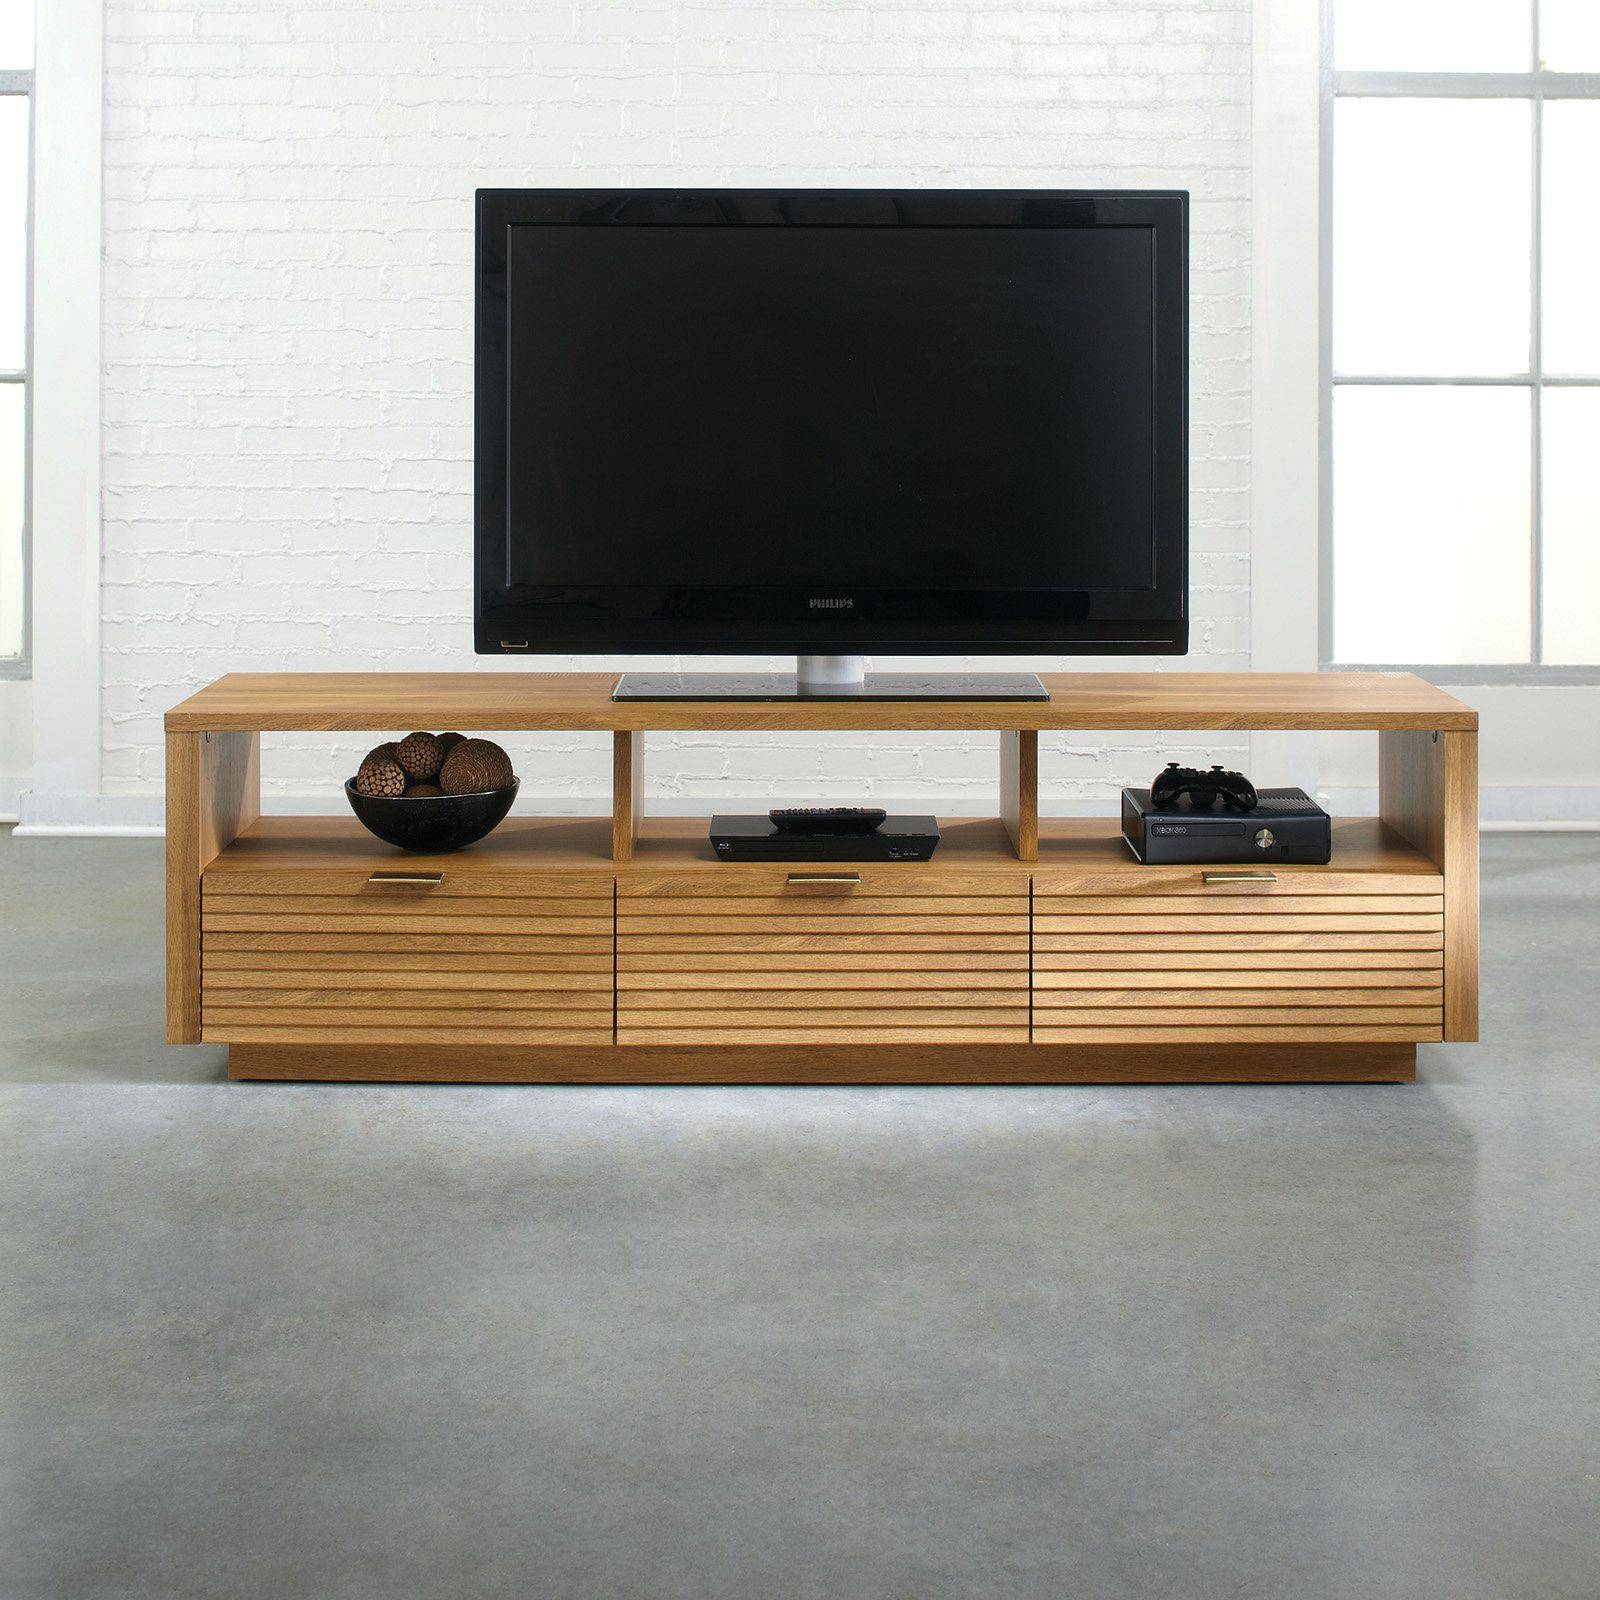 Tv Stand : 23 Fascinating Home Oak Tv Stands 41 To 49 Wide Tv intended for Light Oak Tv Stands Flat Screen (Image 8 of 15)